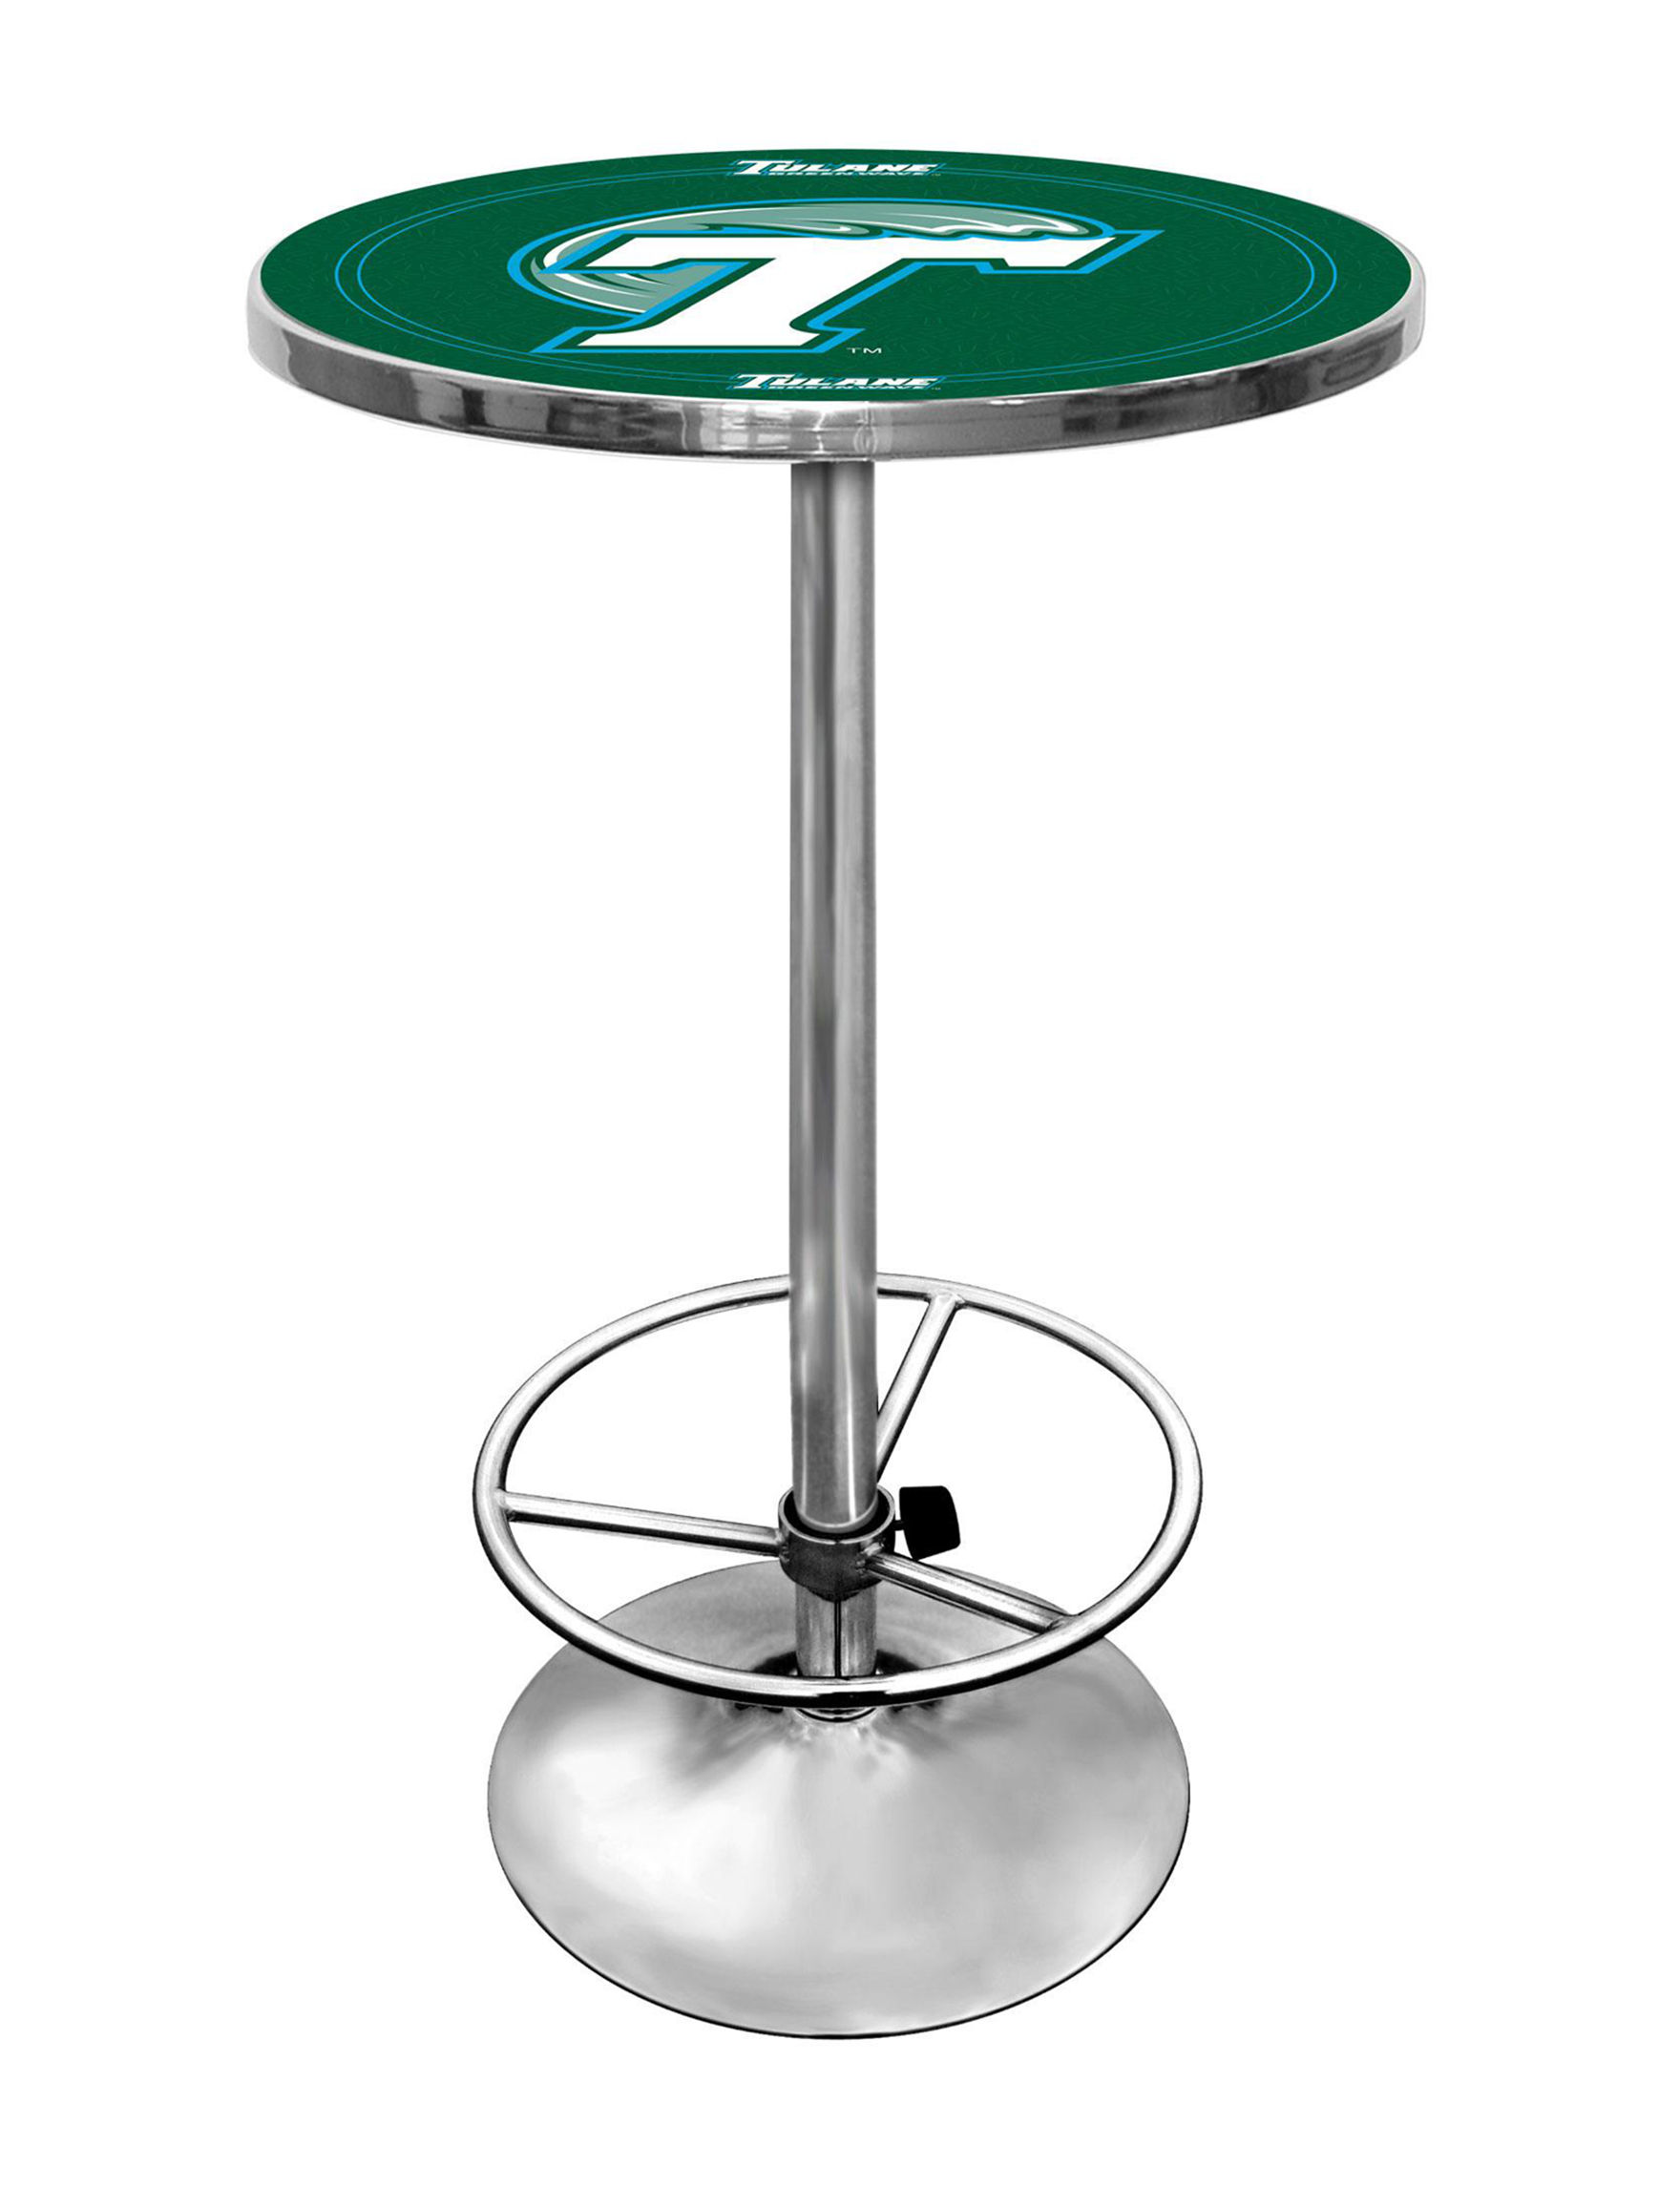 NCAA White / Blue / Green Dining Tables Kitchen & Dining Furniture